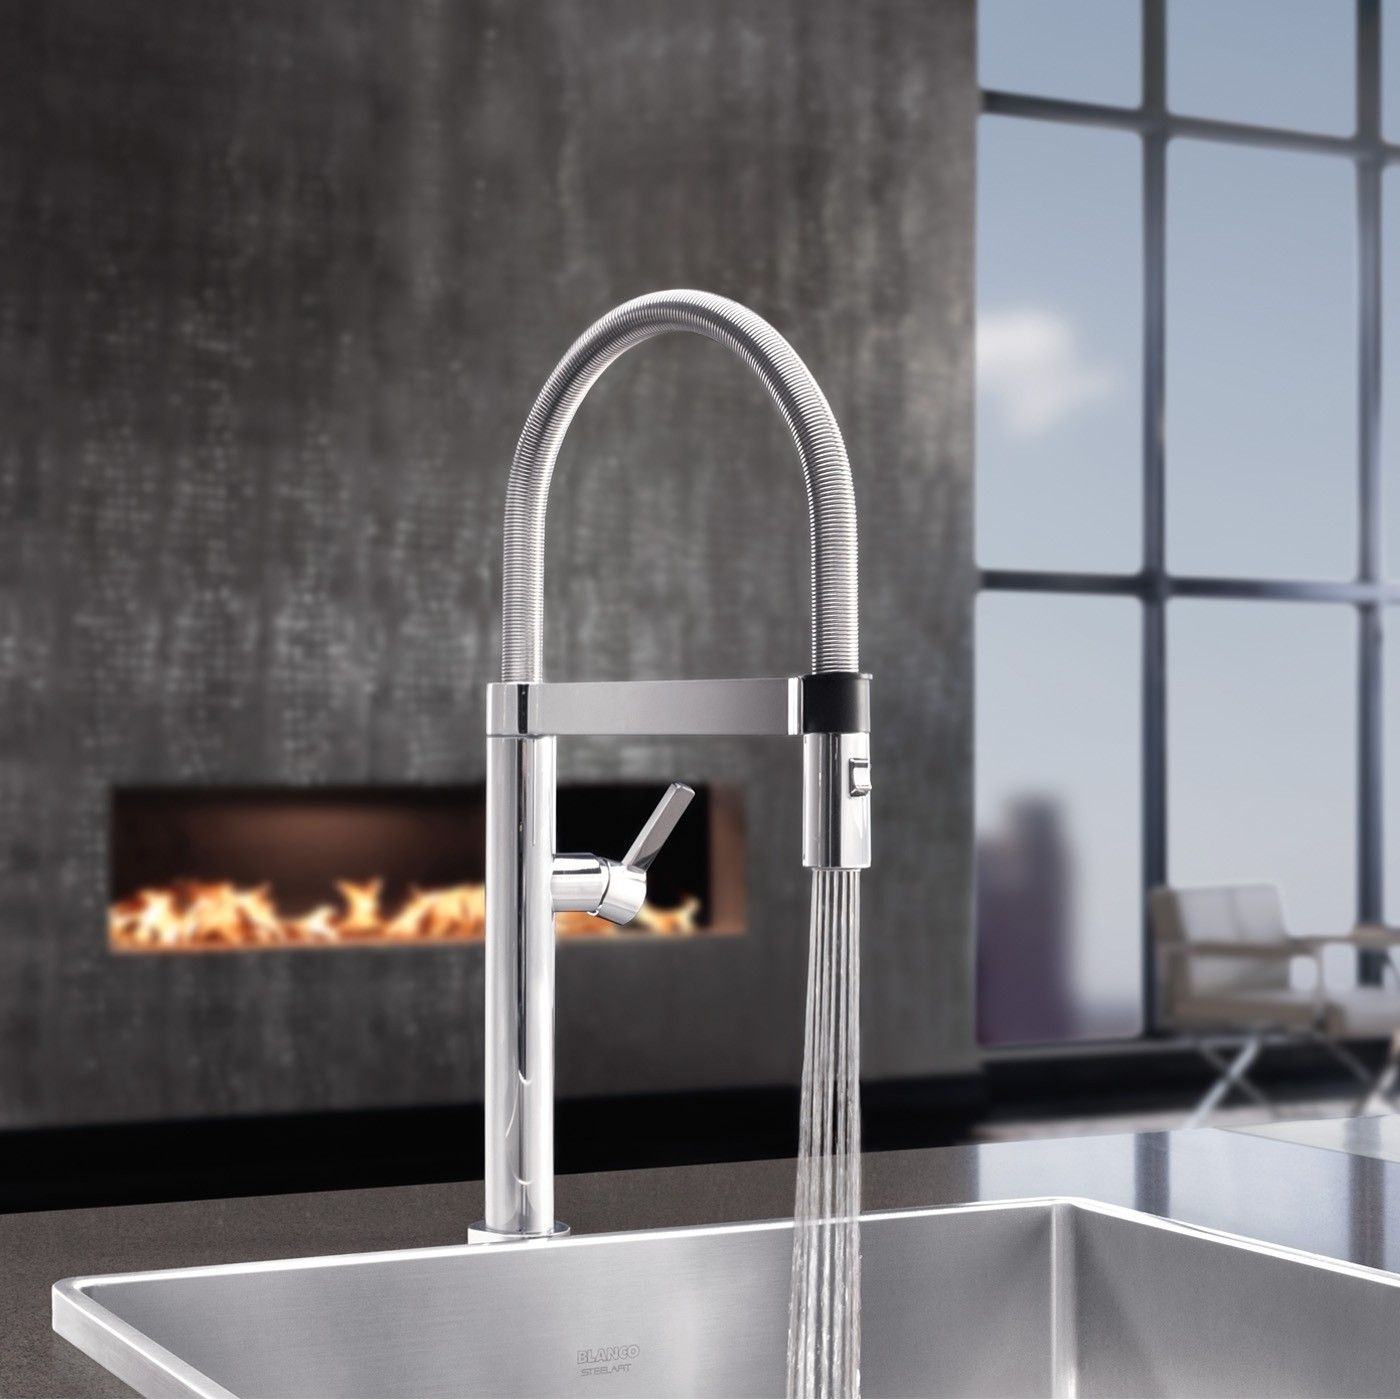 The Culina Mini Pull Down Kitchen Faucet offers refined